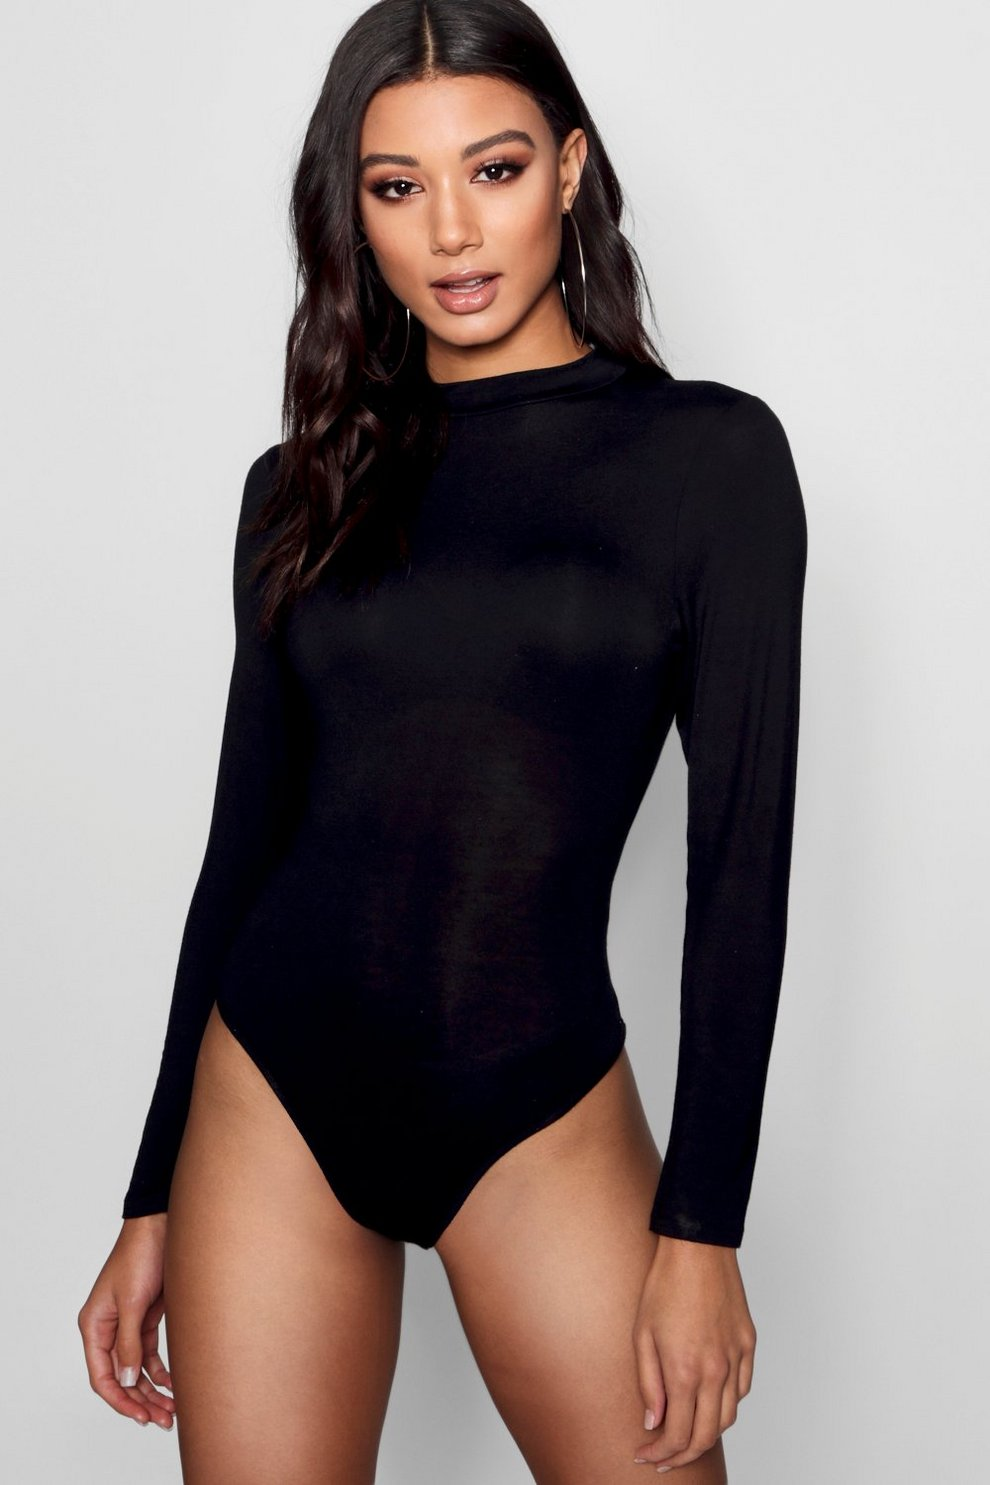 a005e063079 Womens Black Basic Turtle Neck Long Sleeve bodysuit. Hover to zoom